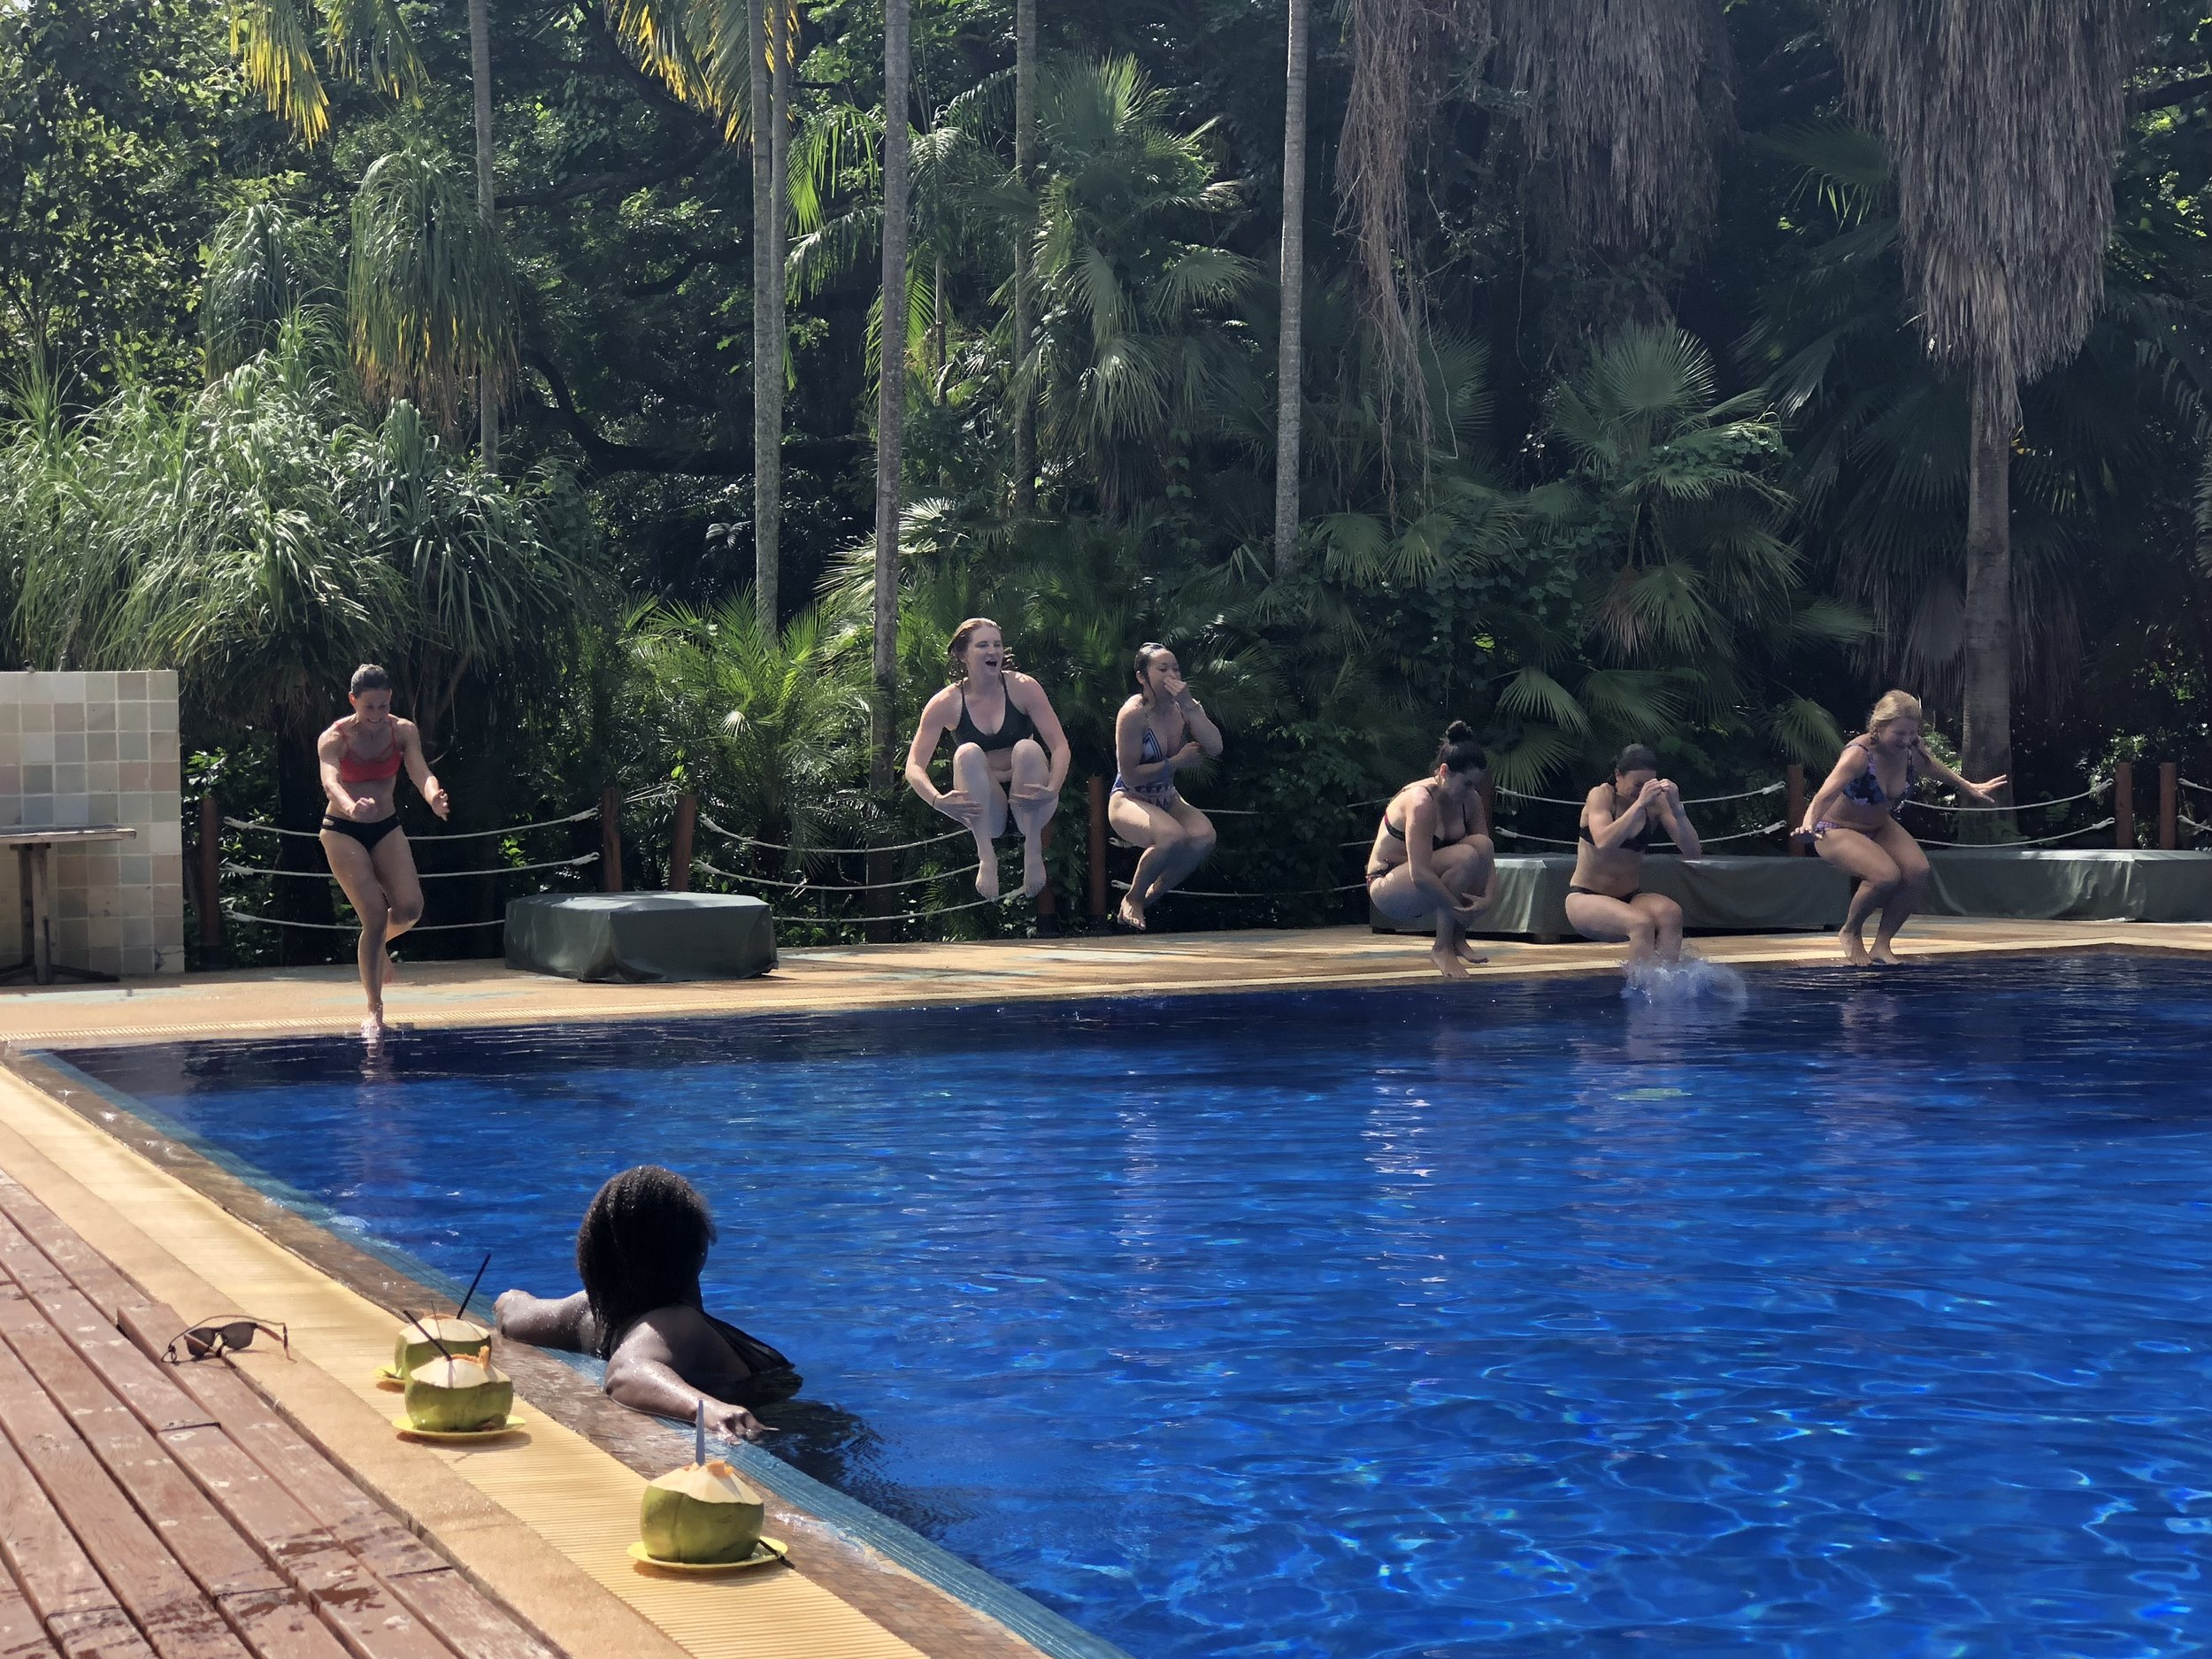 YTT enjoy bonding over a relaxing dip in the pool between sessions.